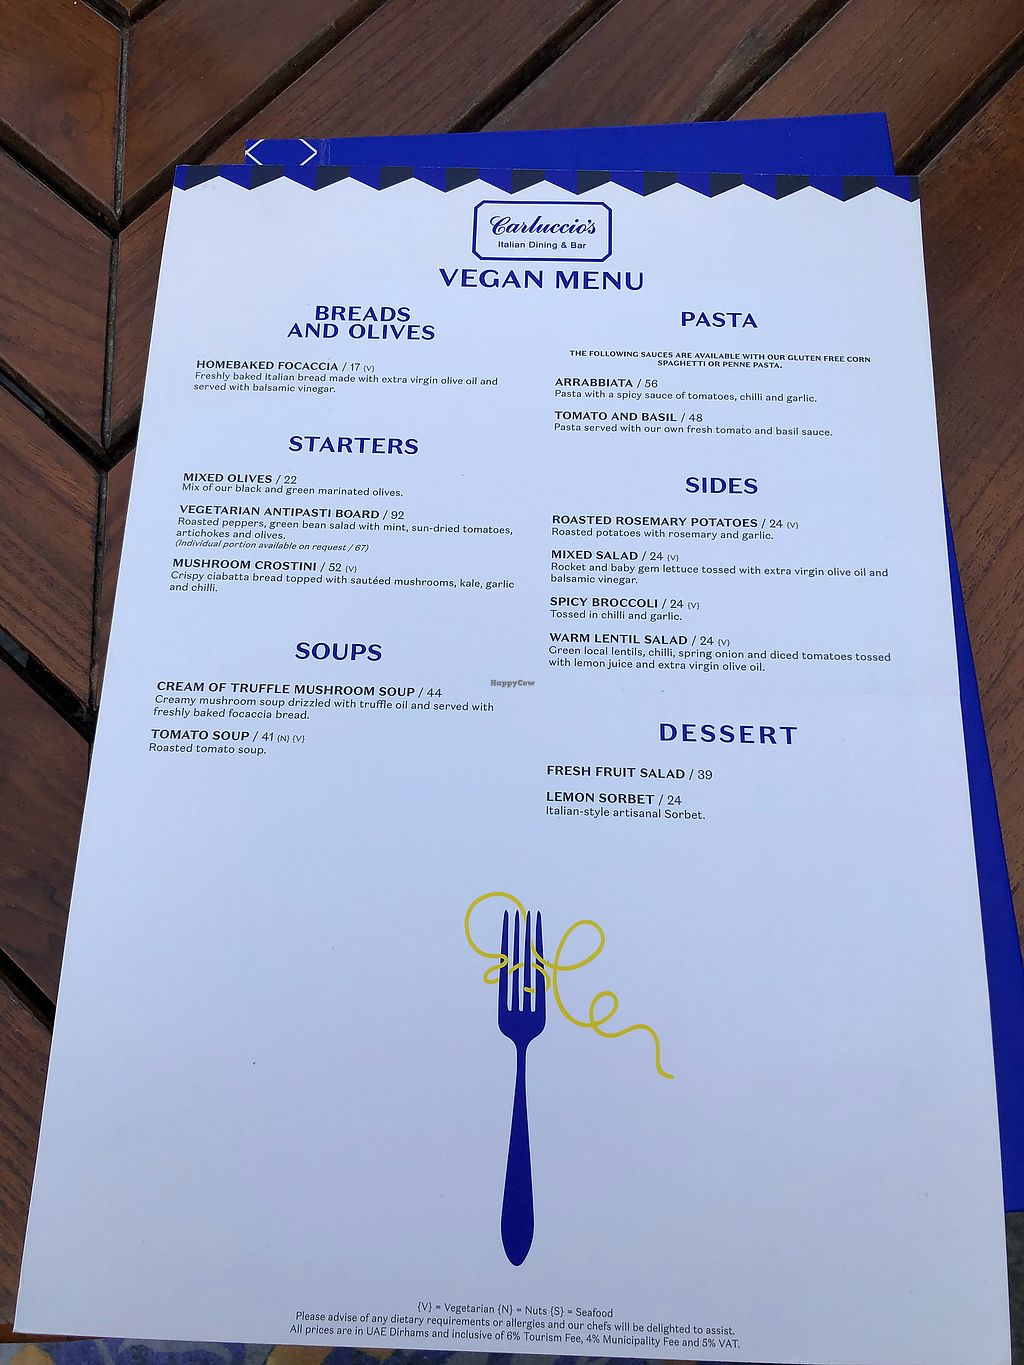 """Photo of Carluccio's  by <a href=""""/members/profile/KrystaRaeRingler"""">KrystaRaeRingler</a> <br/>This is the vegan menu for the day I went <br/> January 31, 2018  - <a href='/contact/abuse/image/77156/353146'>Report</a>"""